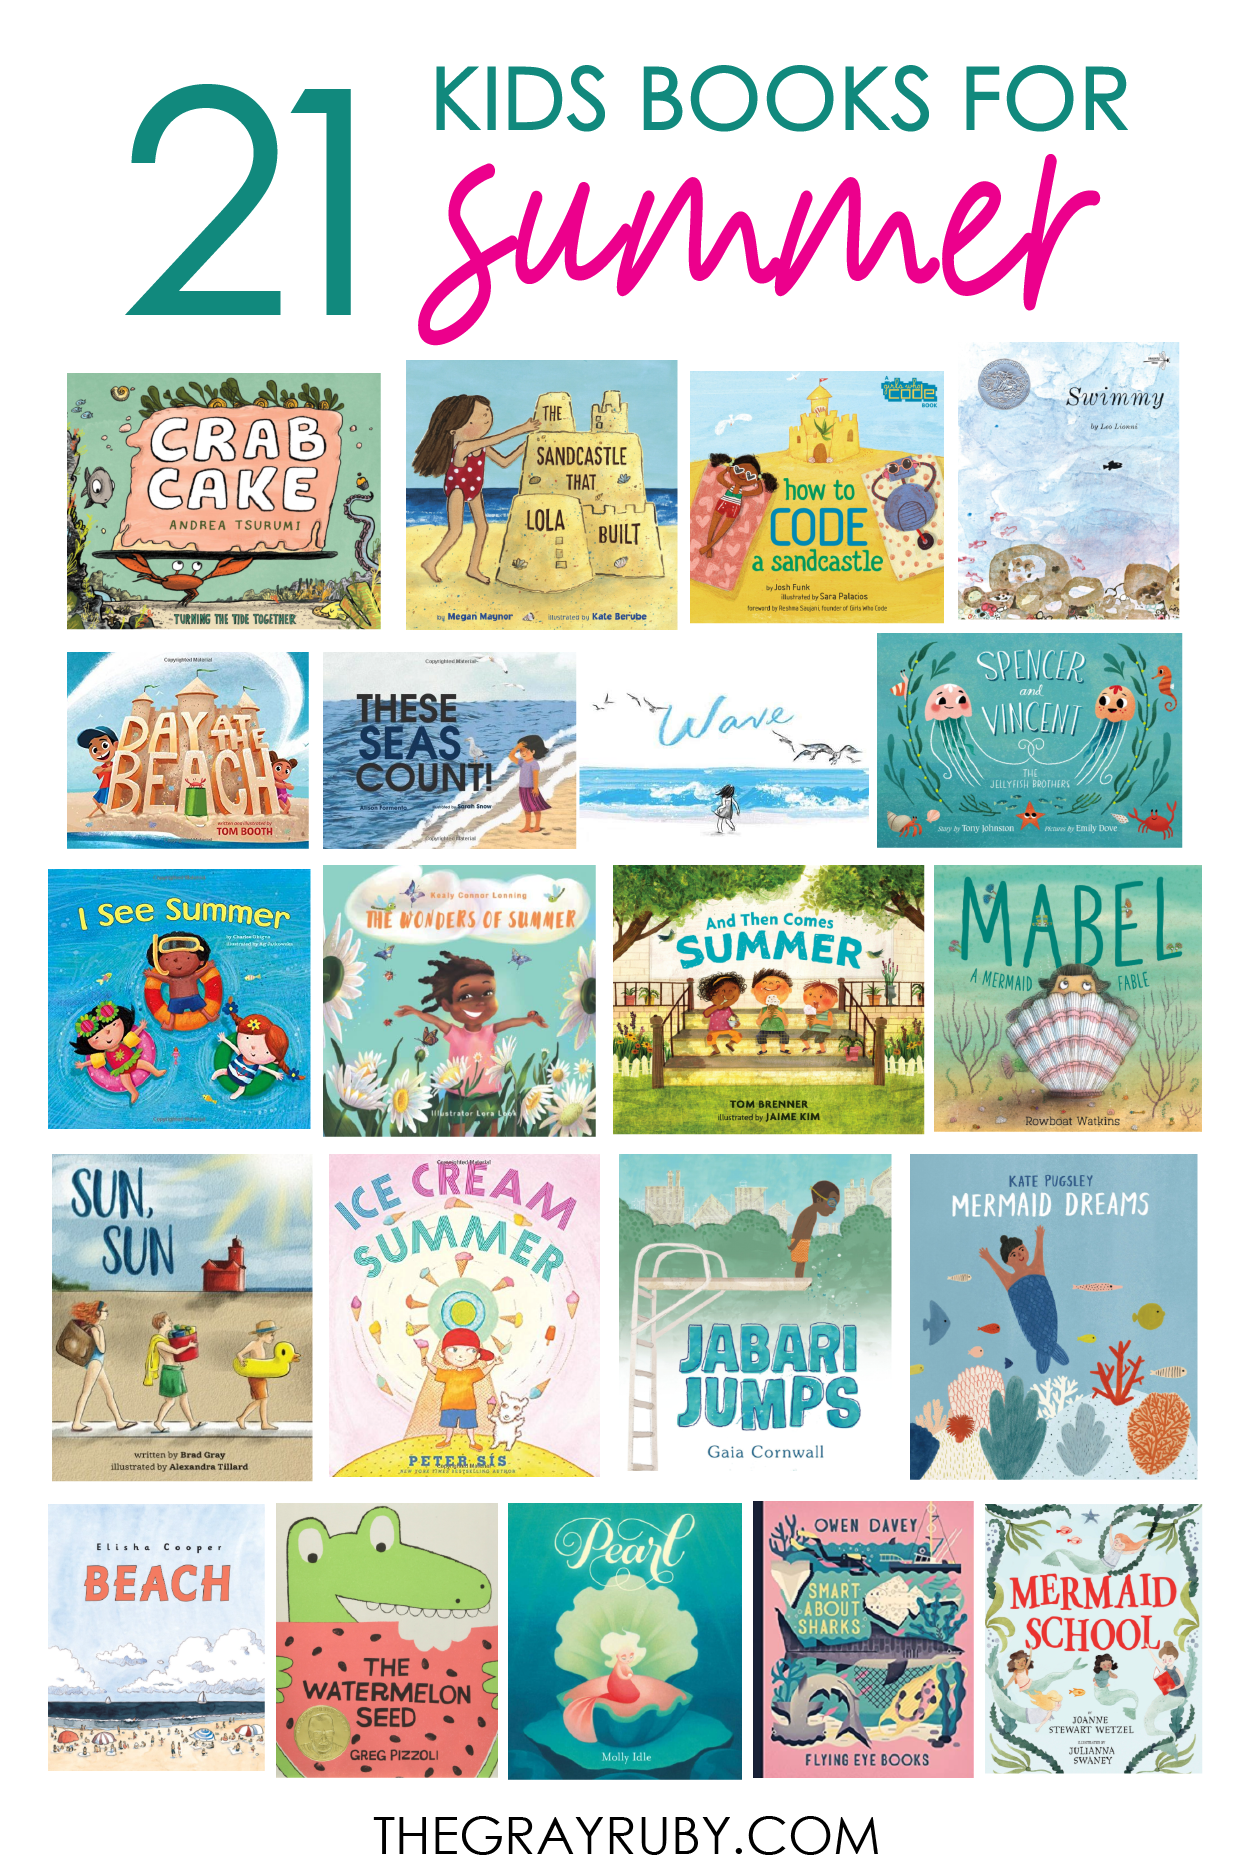 21 children's books about summer - summer books for kids